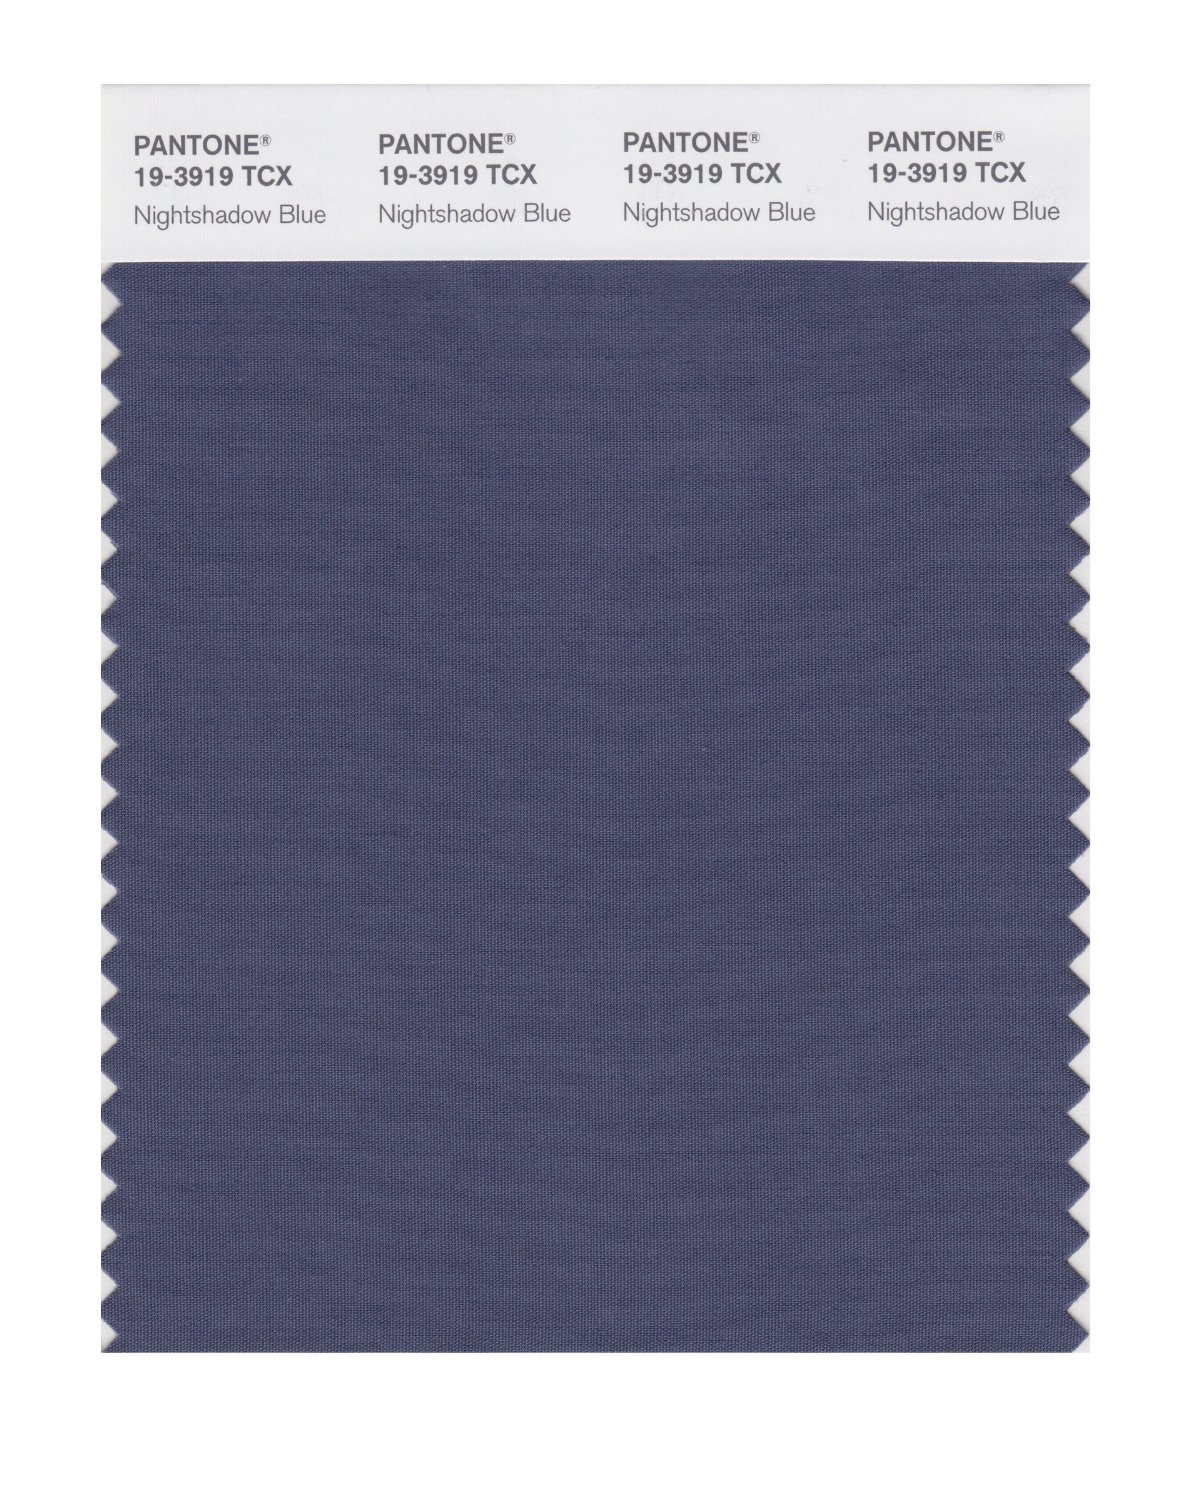 Pantone Smart Swatch 19-3919 Nightshadow Blue